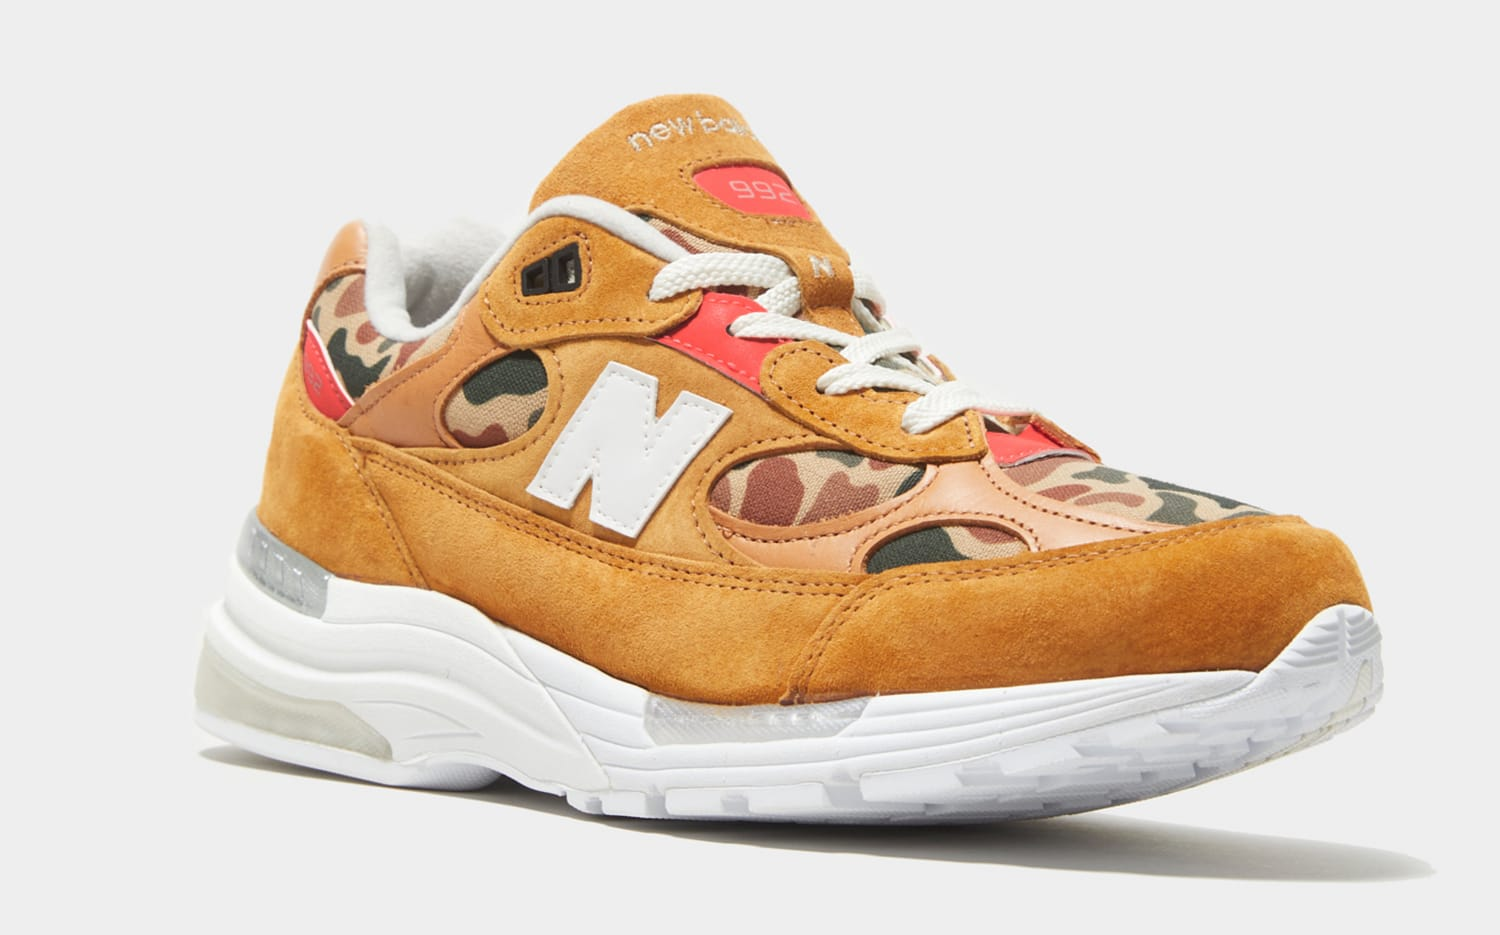 Todd Snyder x New Balance 992 Front